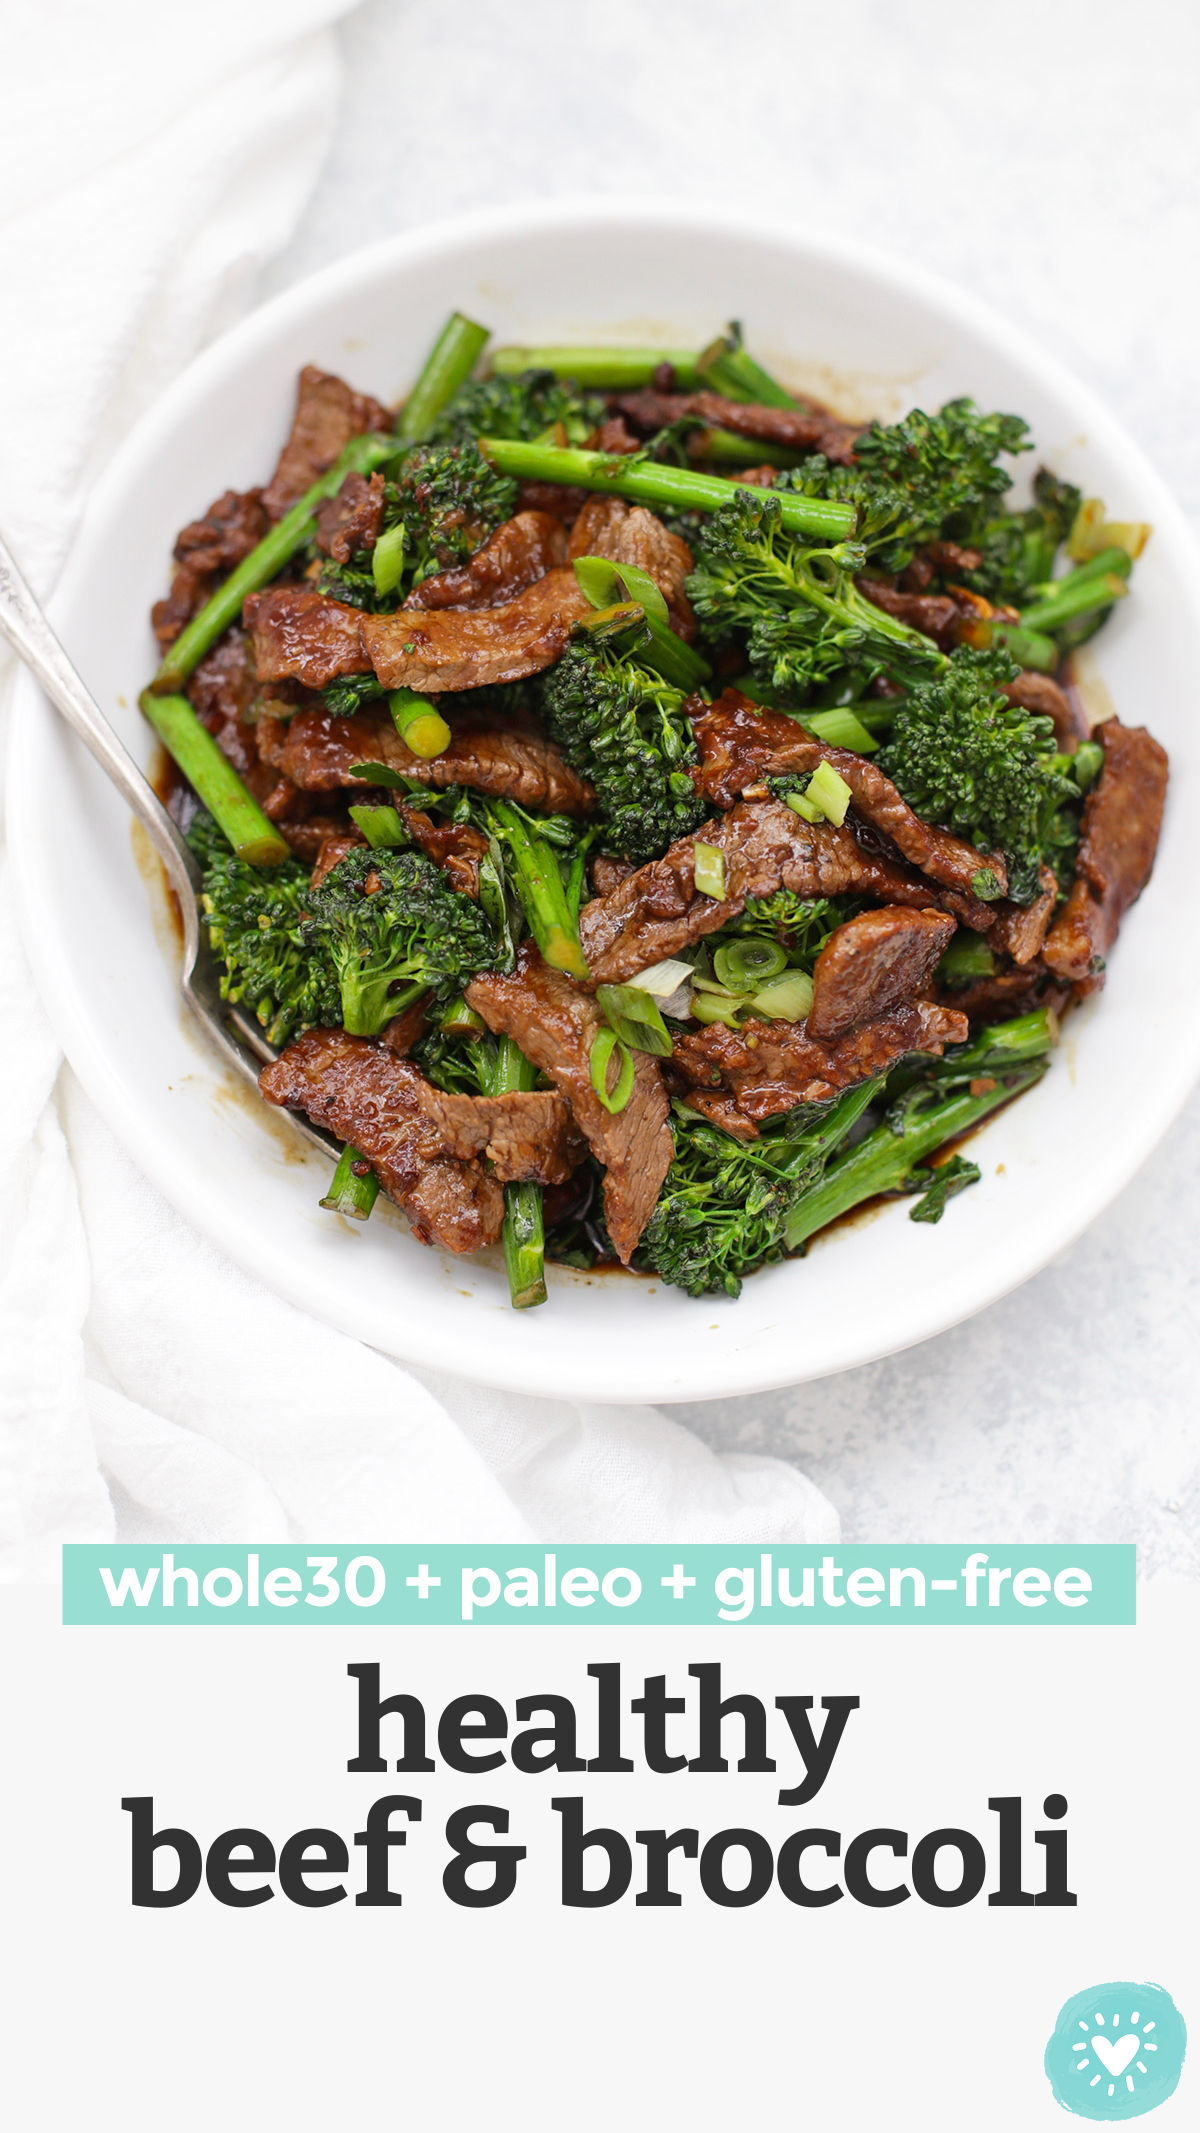 Healthy Beef and Broccoli - This take-out favorite is so easy to make at home and--BONUS--it's paleo, gluten free, and Whole30 approved! // paleo beef and broccoli // whole30 beef and broccoli, low carb beef and broccoli // #paleo #stirfry #lowcarb #beefandbroccoli #glutenfree #whole30